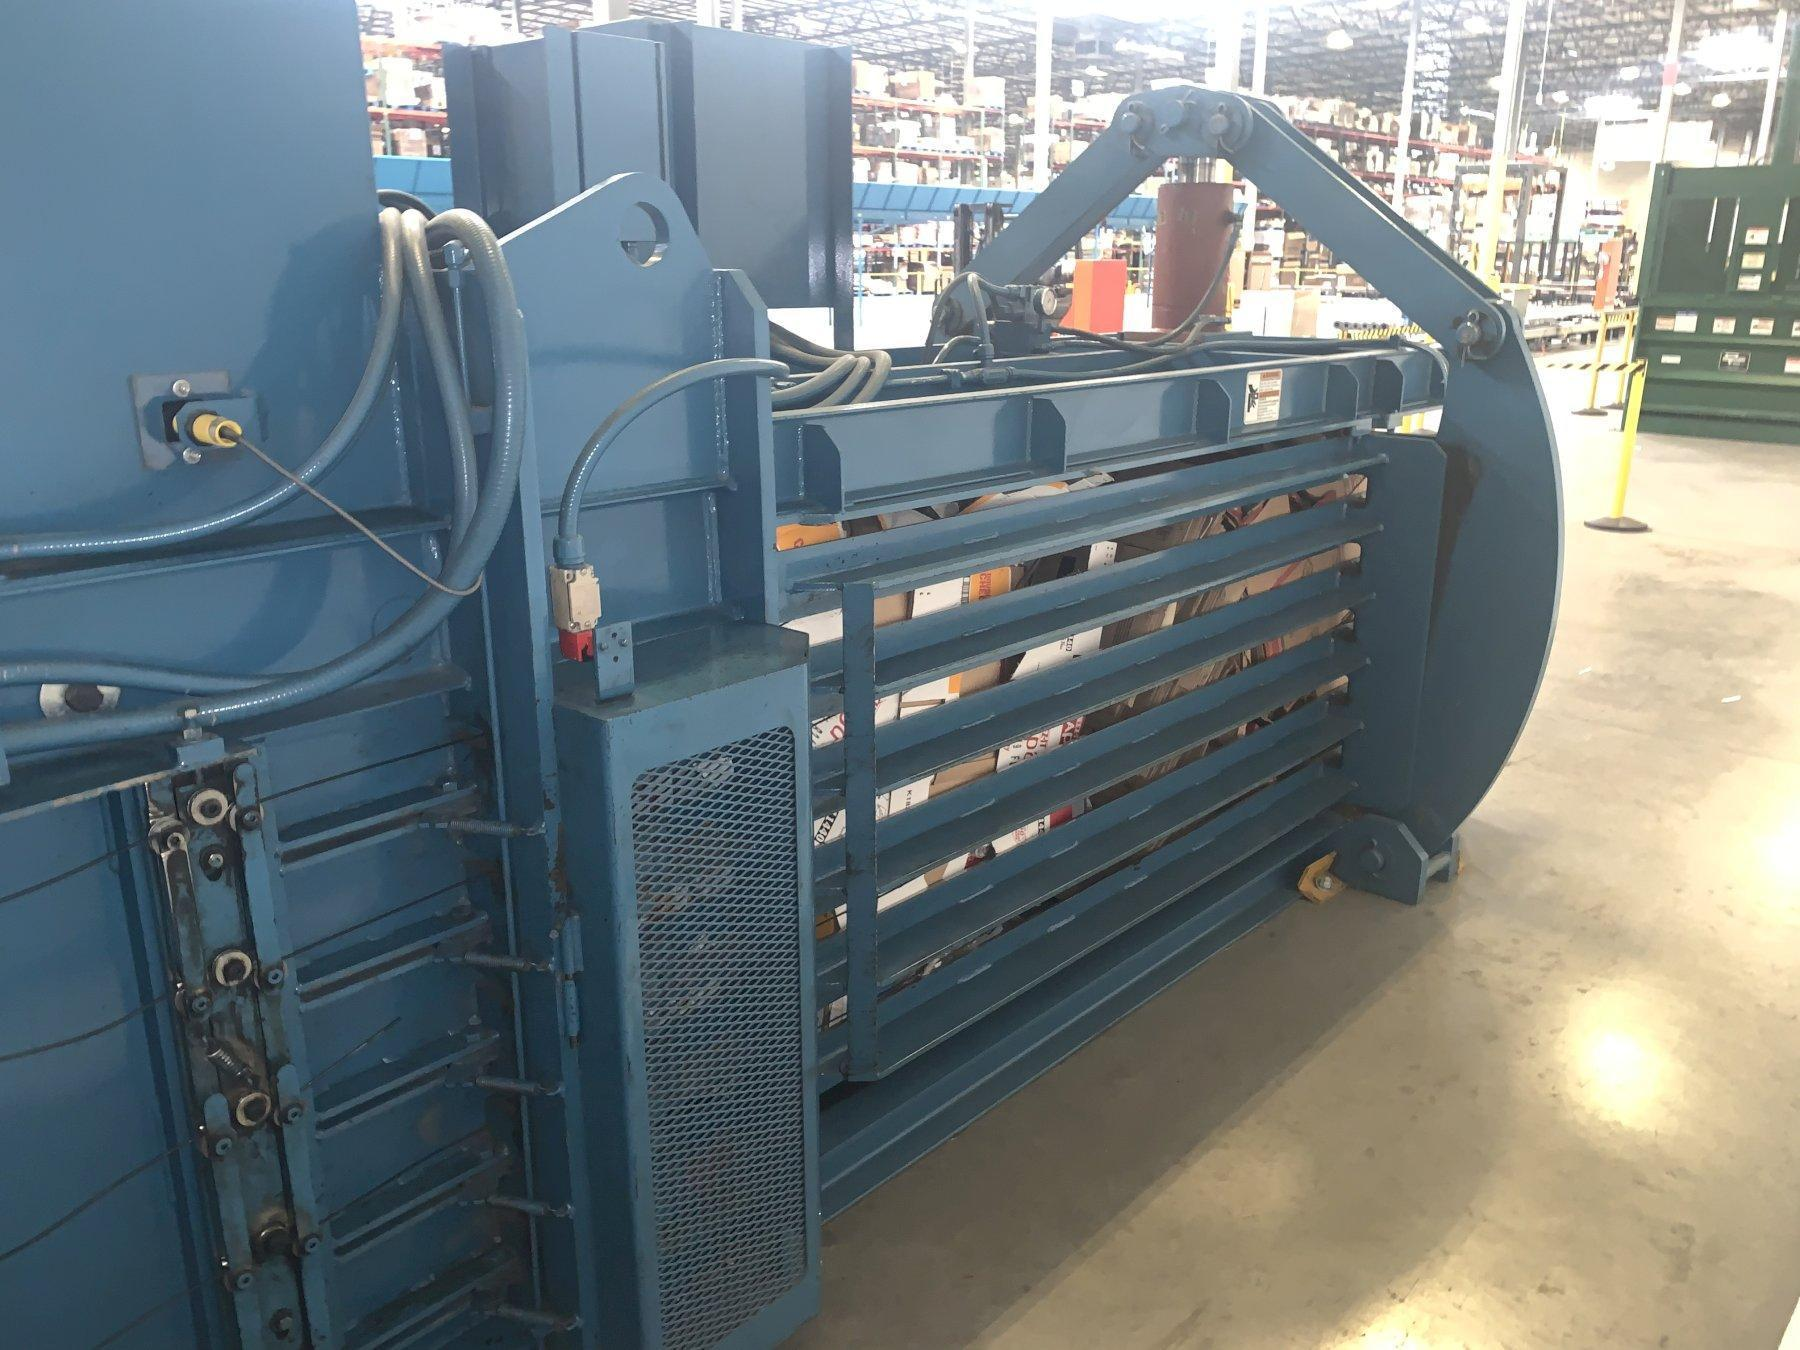 "48"" x 42"" x 30 HP Nexgen TIEger Series WC-150-60 Horizontal Auto-Tie Cardboard Baler with 42' Conveyor"